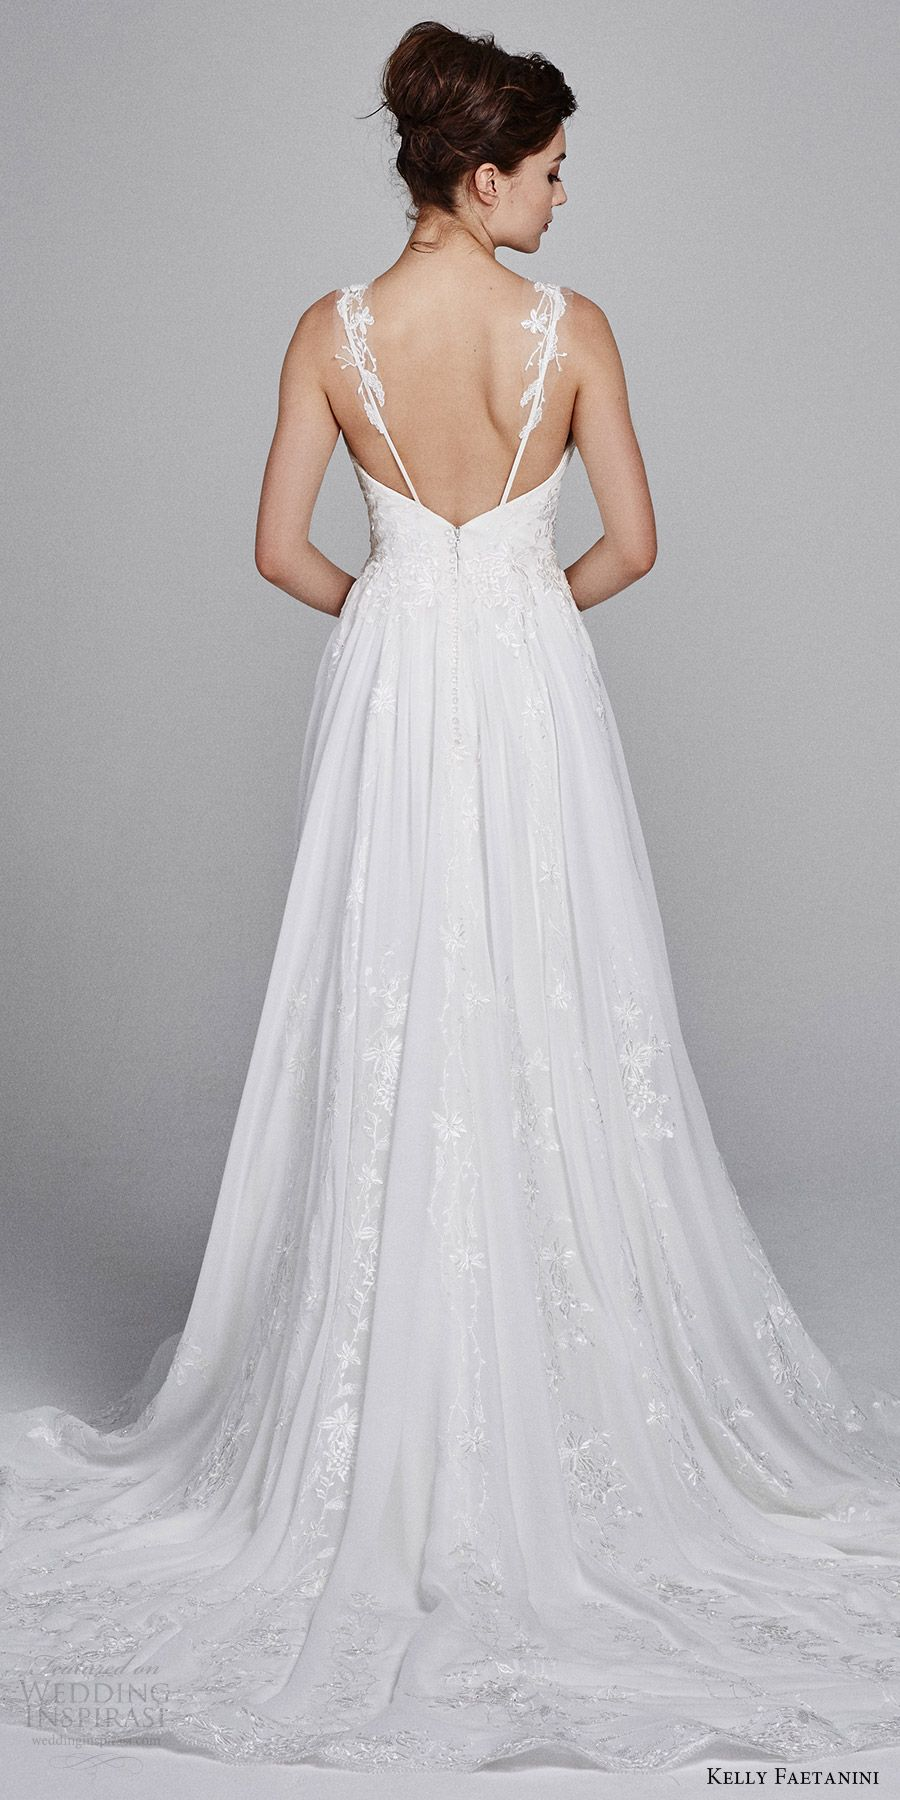 Aline wedding dress  Kelly Faetanini Fall  Wedding Dresses  wedding wear